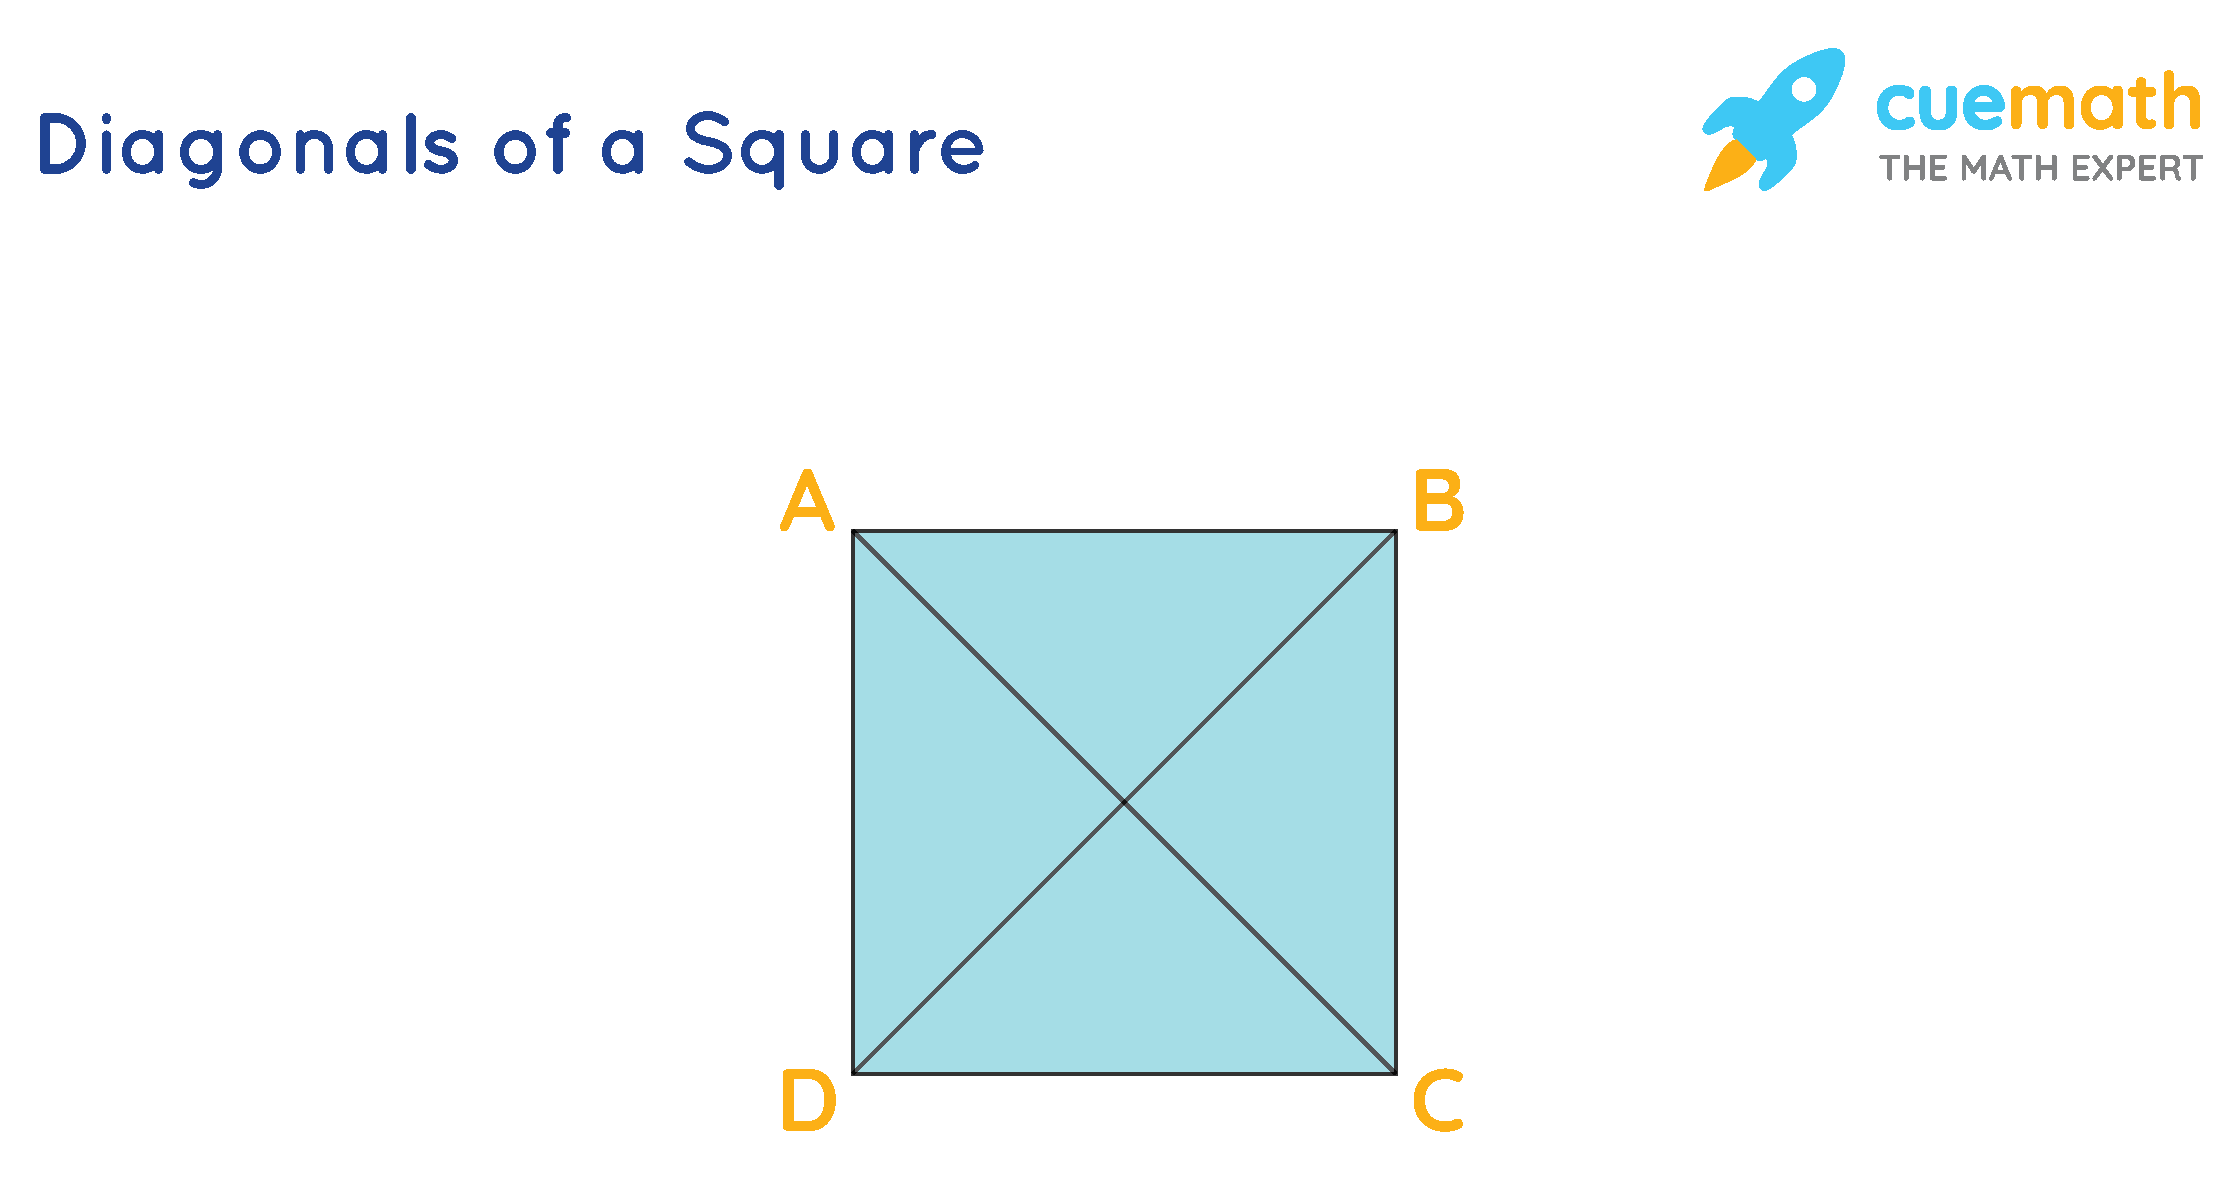 The diagonals of a square are shown. Each square has 2 diagonals.